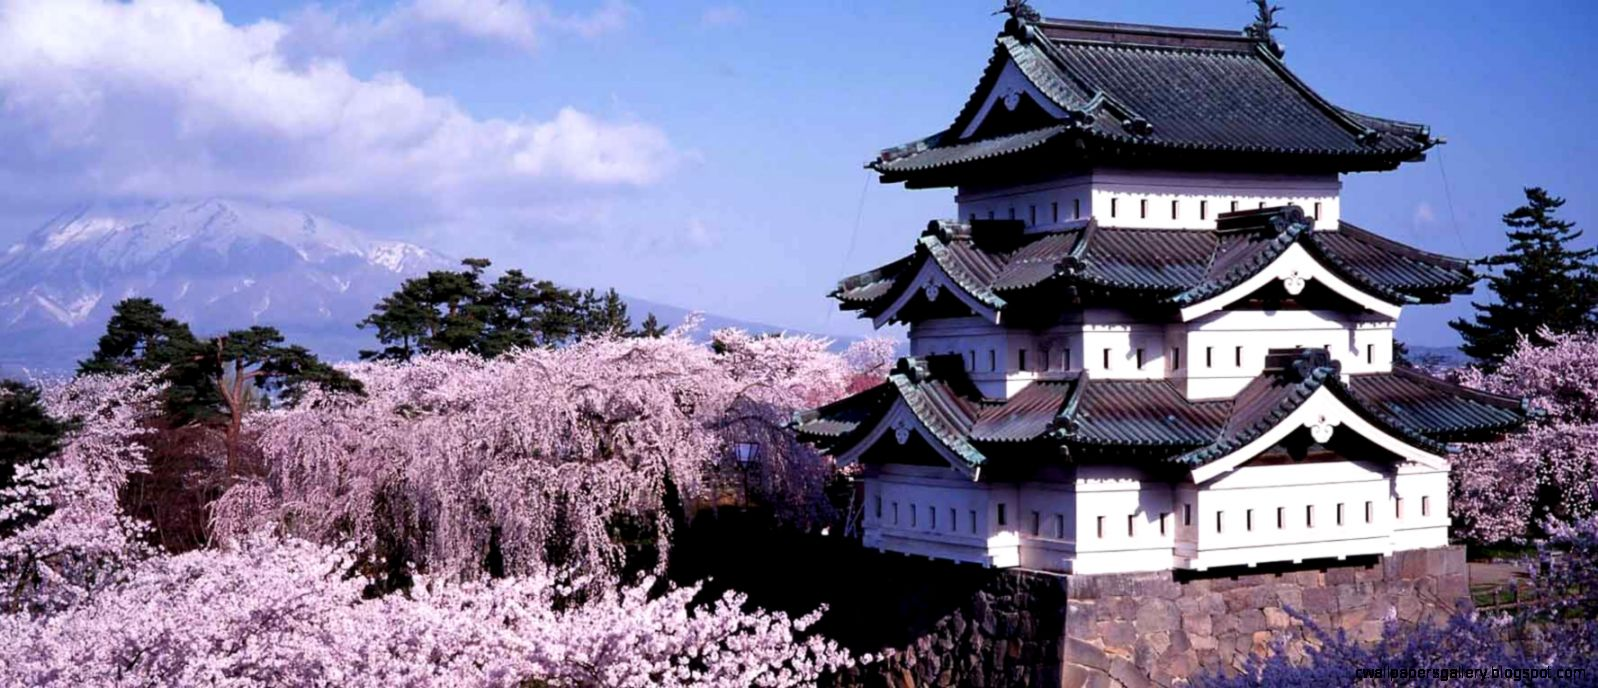 Where to See Cherry Blossoms in Japan